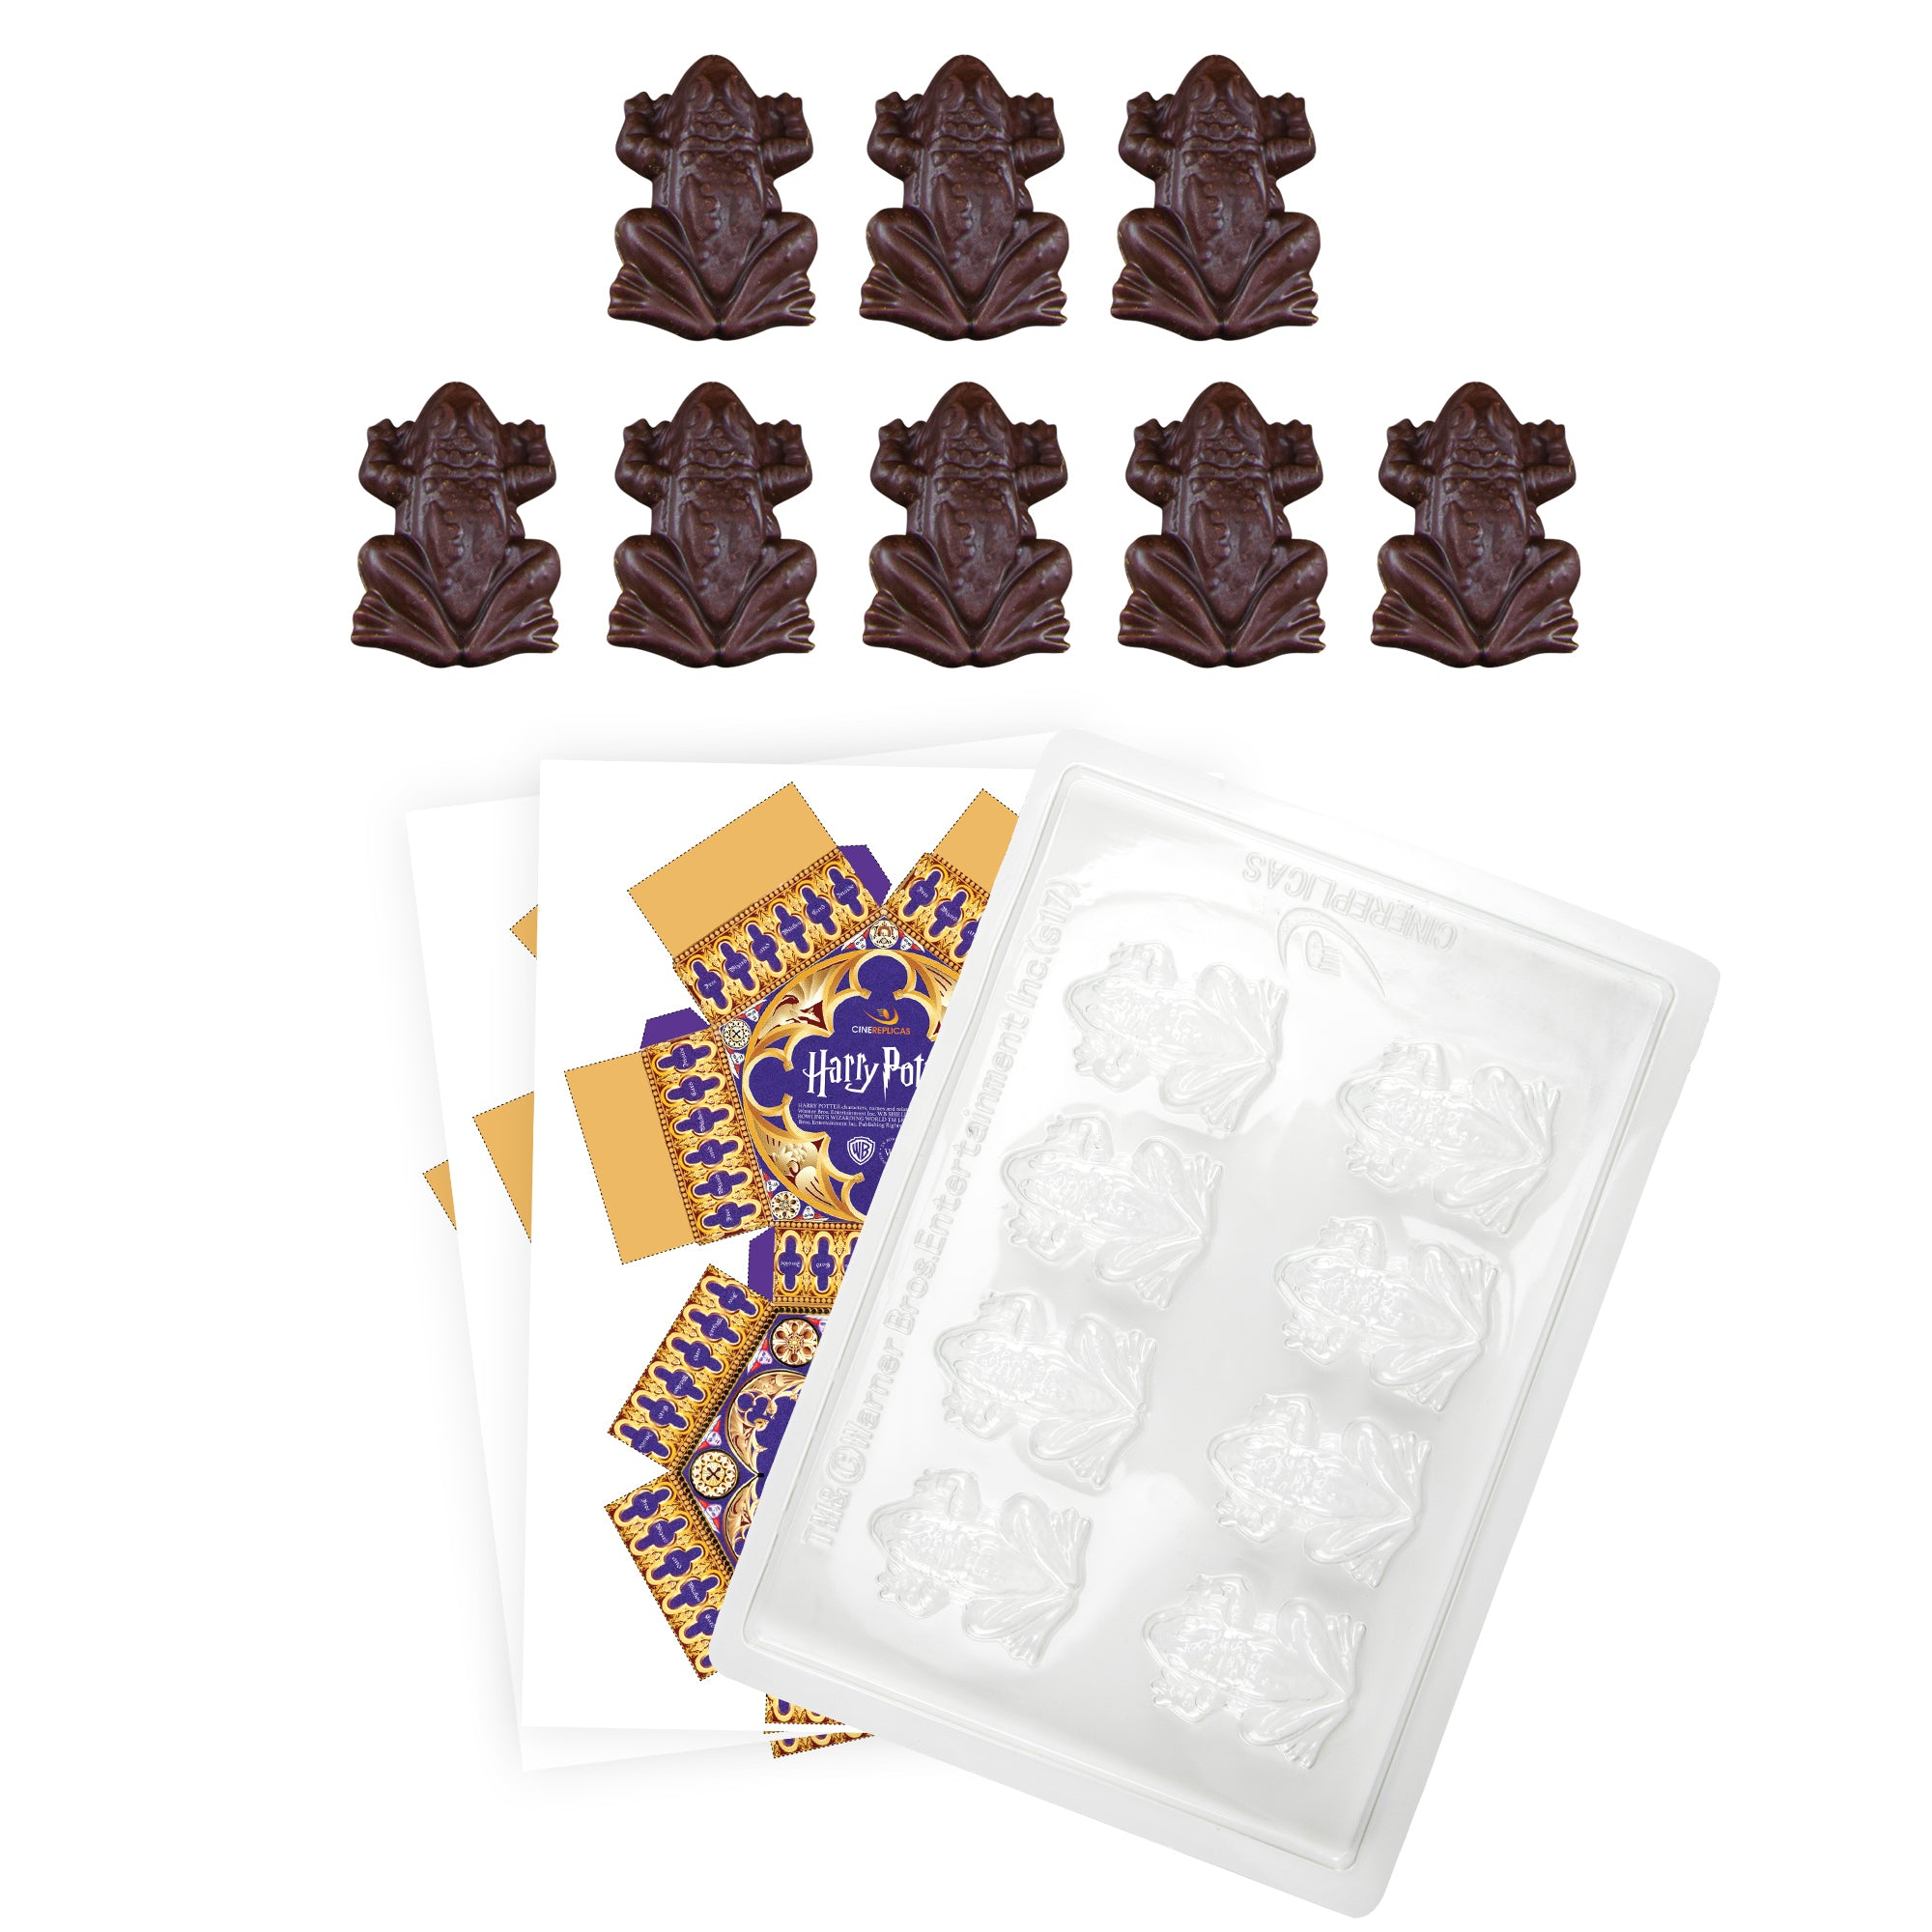 graphic about Harry Potter Chocolate Frog Cards Printable called Harrry Potter Chocolate Frog Mildew + 8 Do it yourself bins